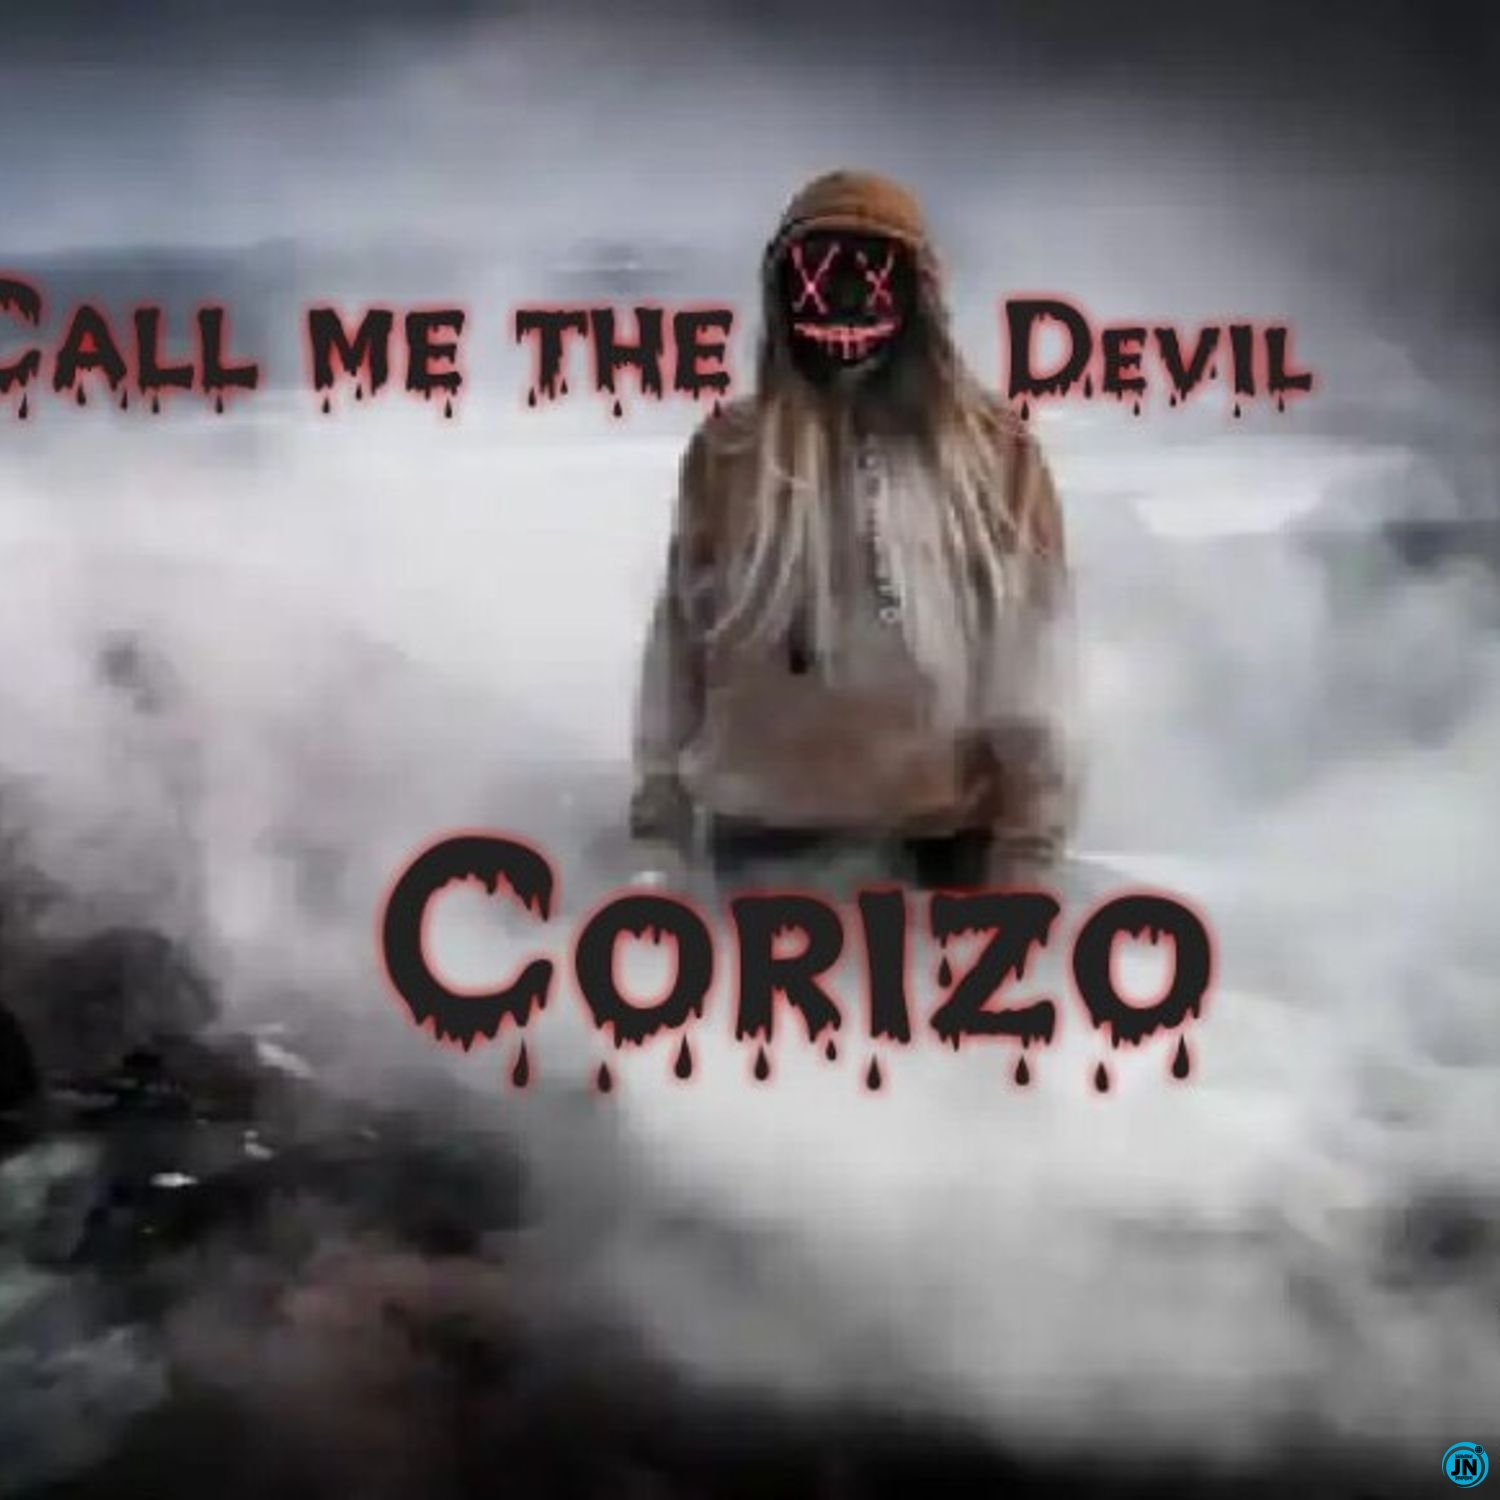 Corizo – Call me the devil